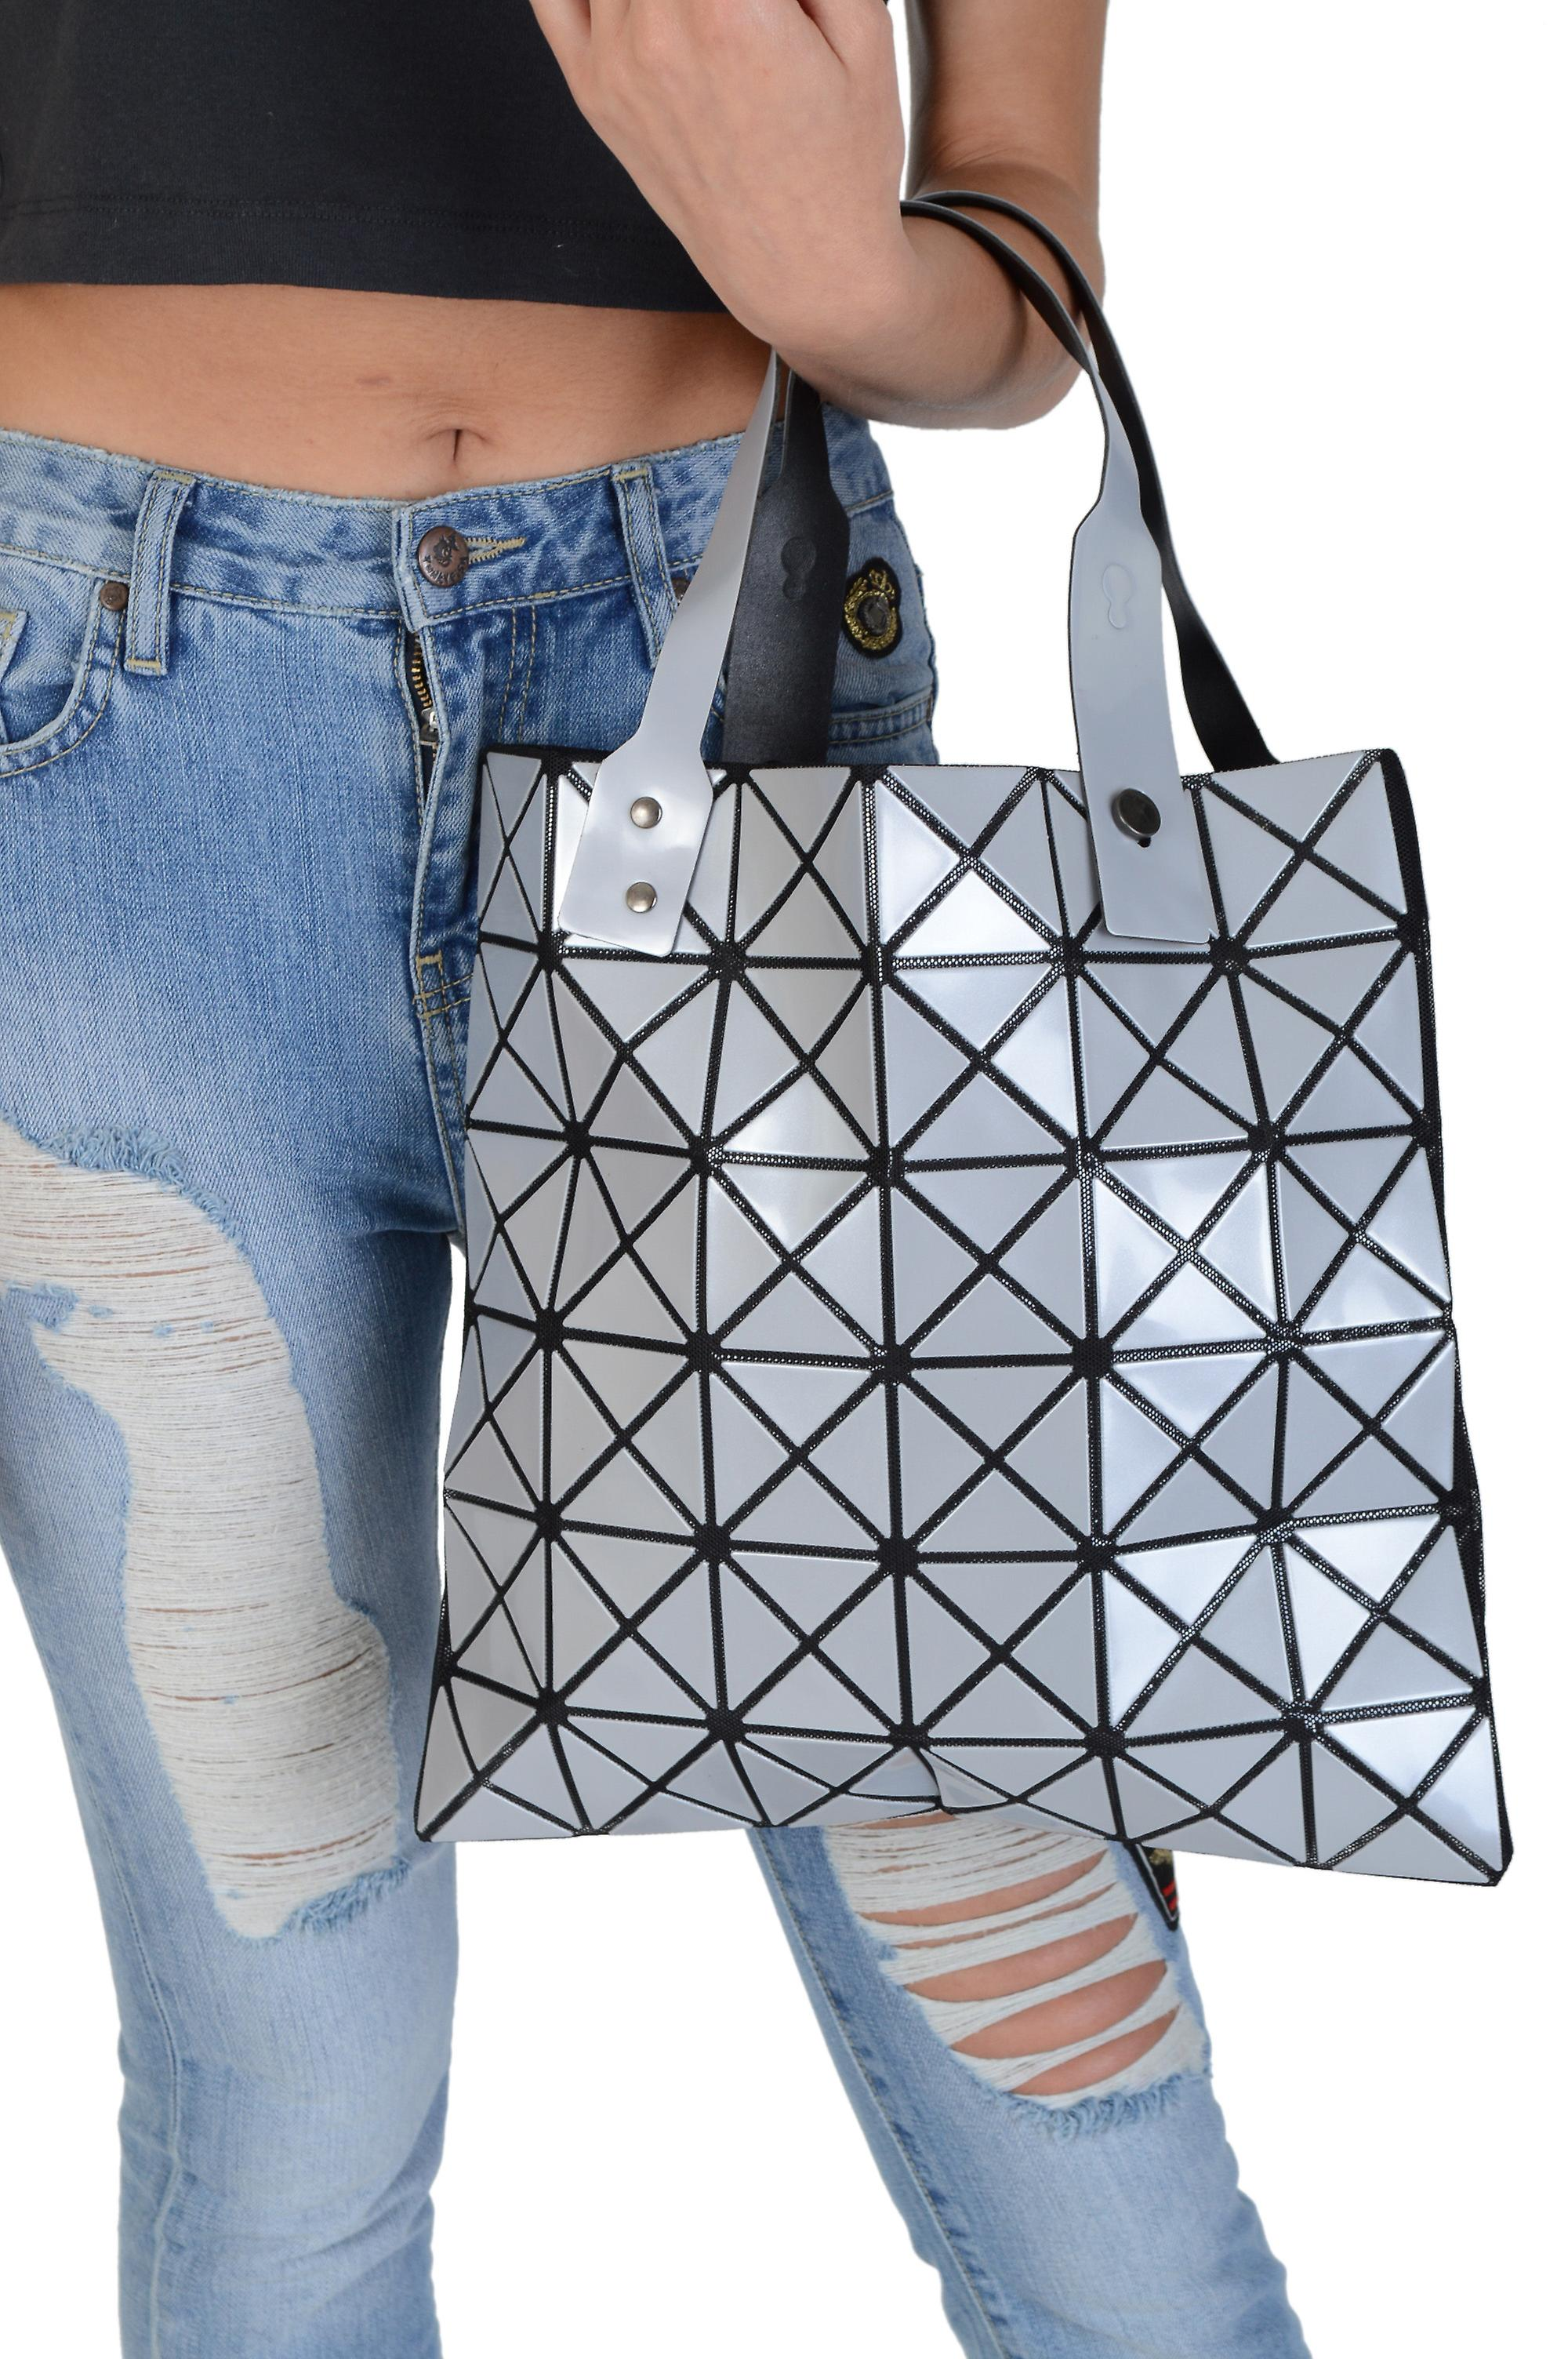 Lovemystyle Silver and Black Triangle Tote Bag